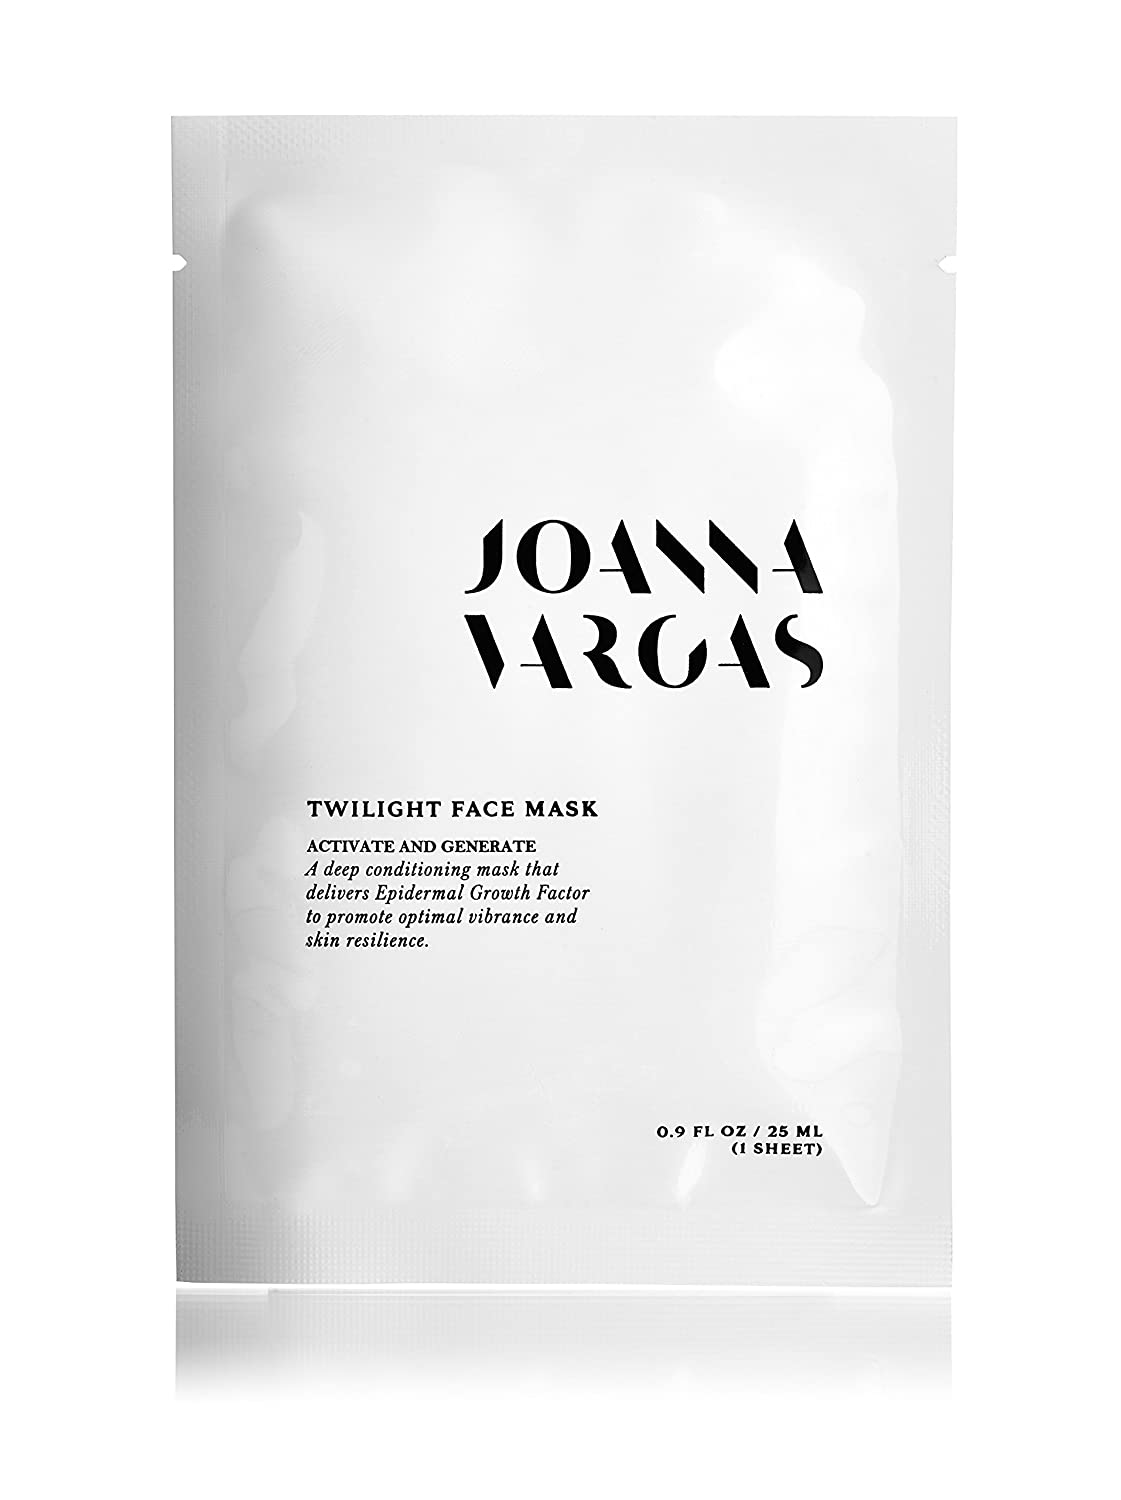 The Joanna Vargas Twilight Epidermal Growth Factor Face Mask Will Help You Get Rid Of Wrinkles - Moisturizers with Peptides - Amino Acids